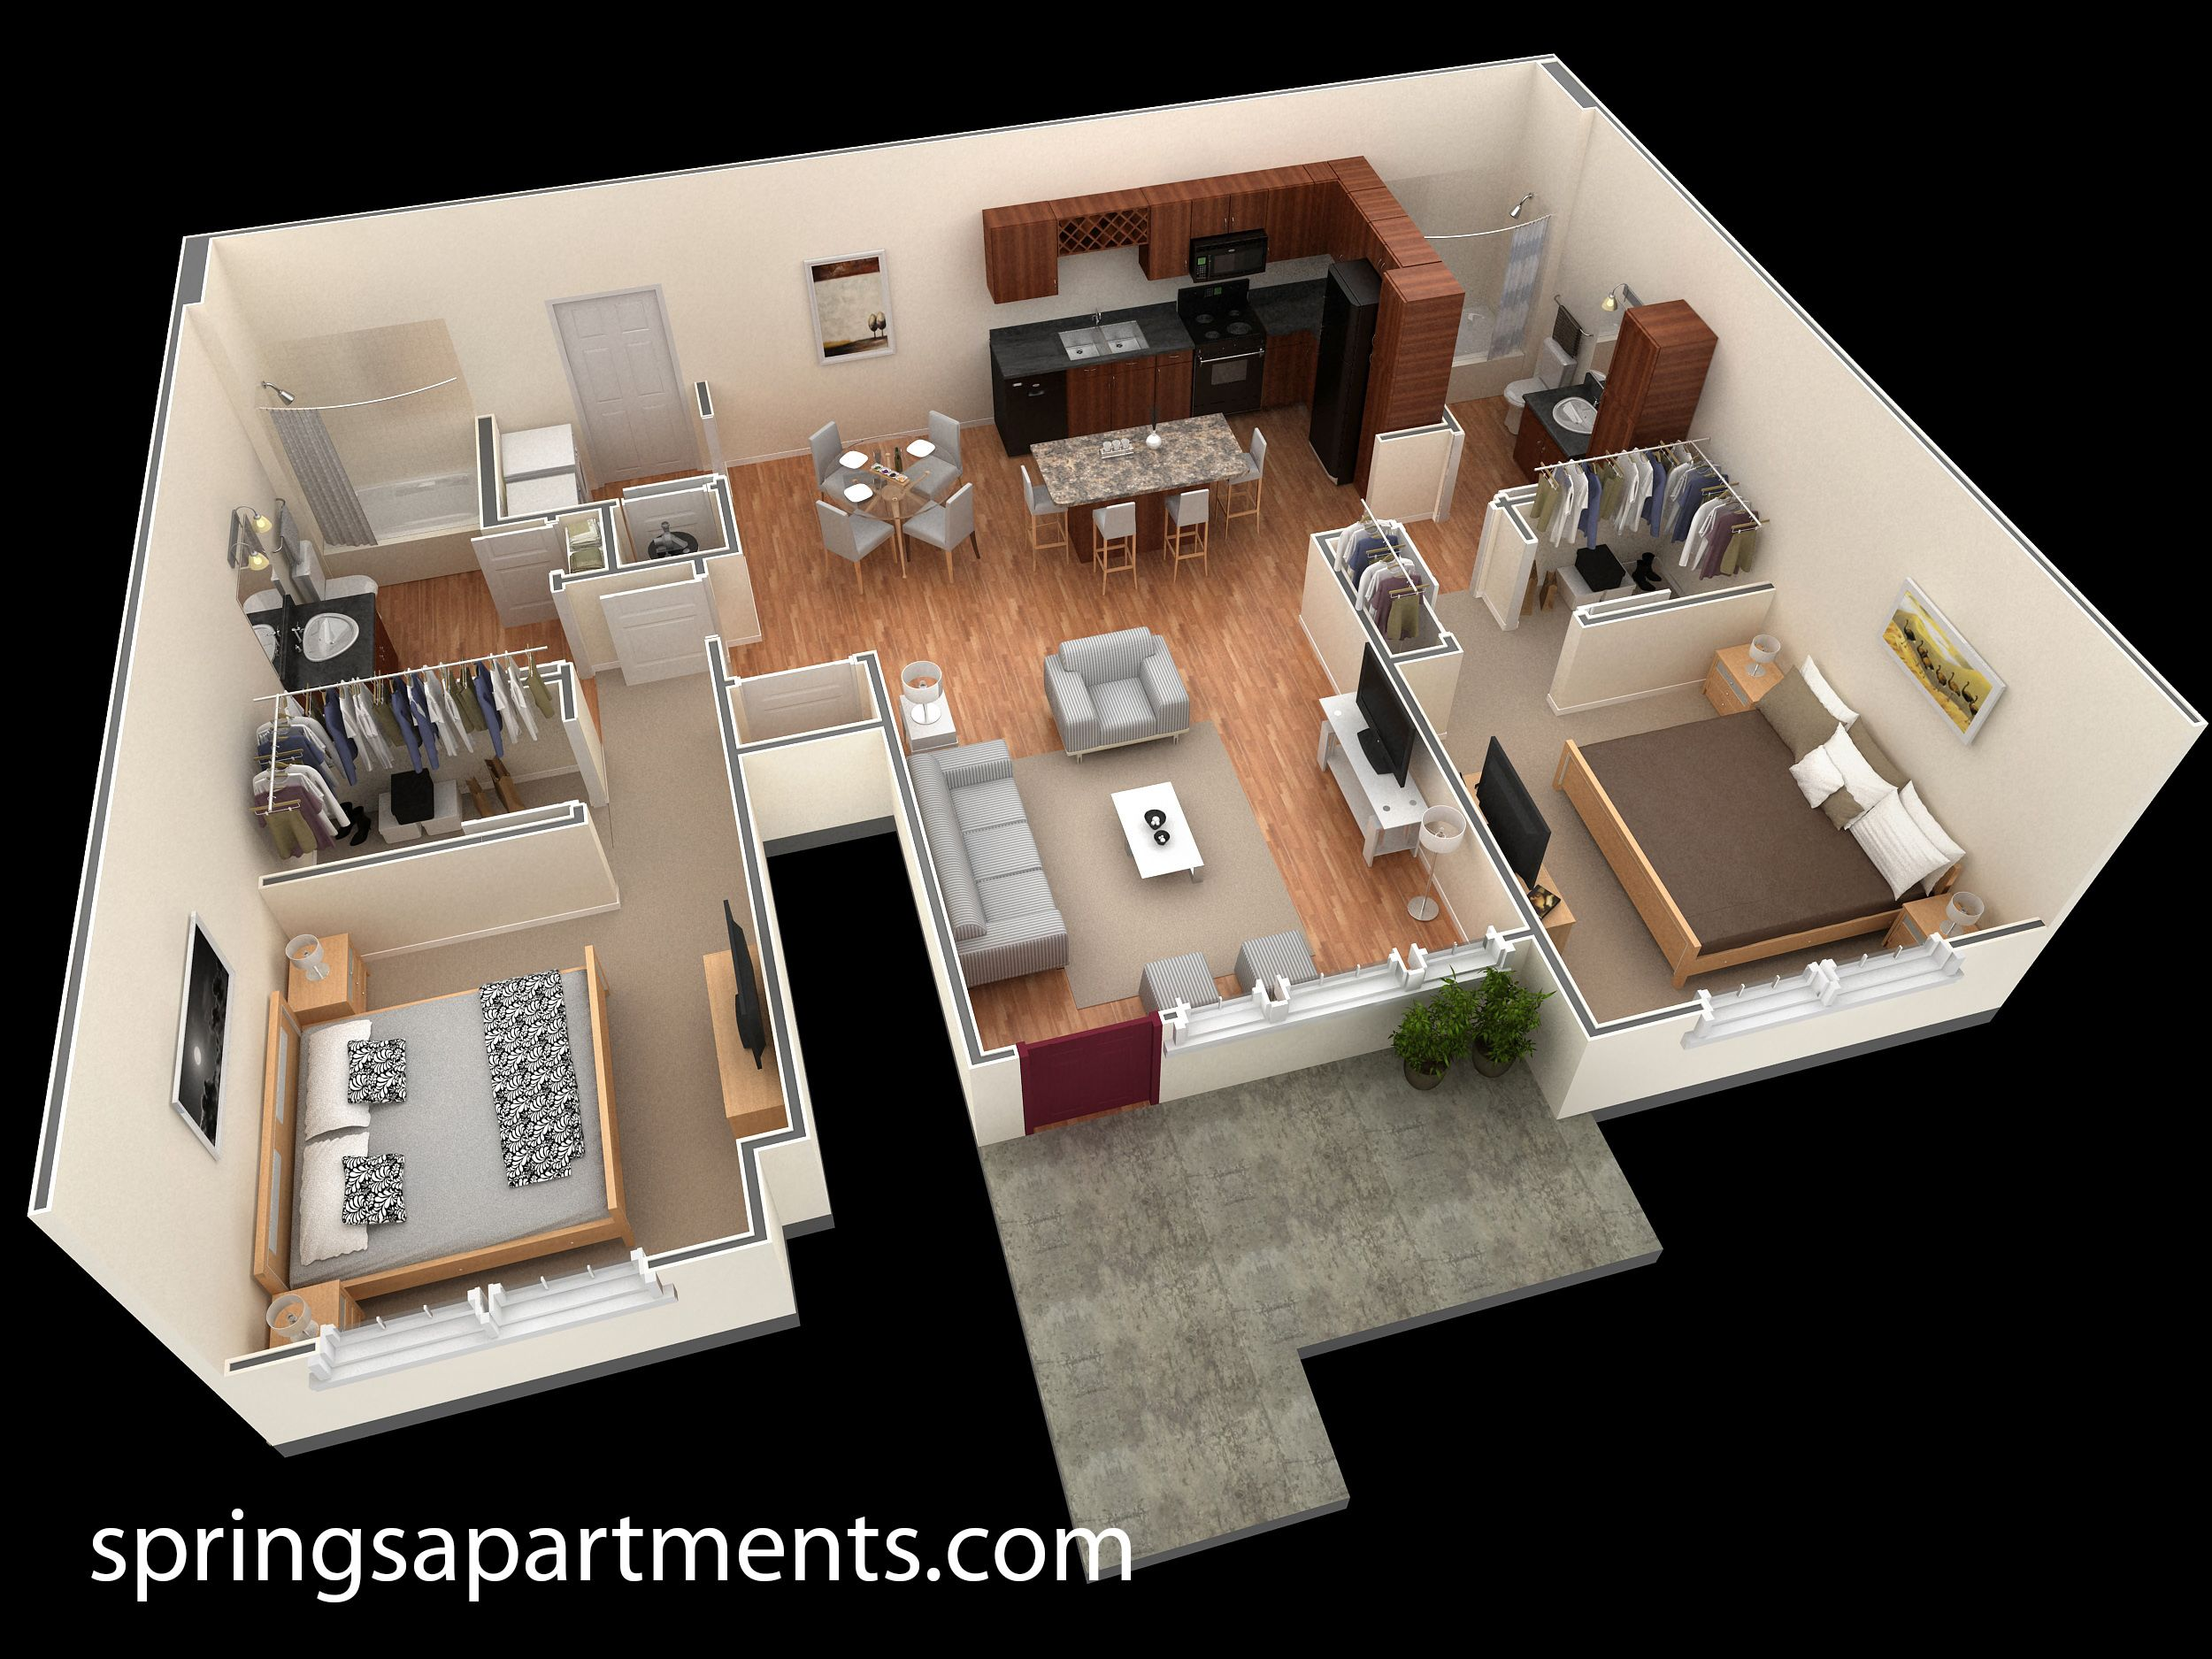 2 Bedroom 2 Bath 1088 Sf At Springs At Creekside This 2 Bedroom Designer Overlook Apartment Comes With 2 Small House Design Sf Apartment Spacious Living Room